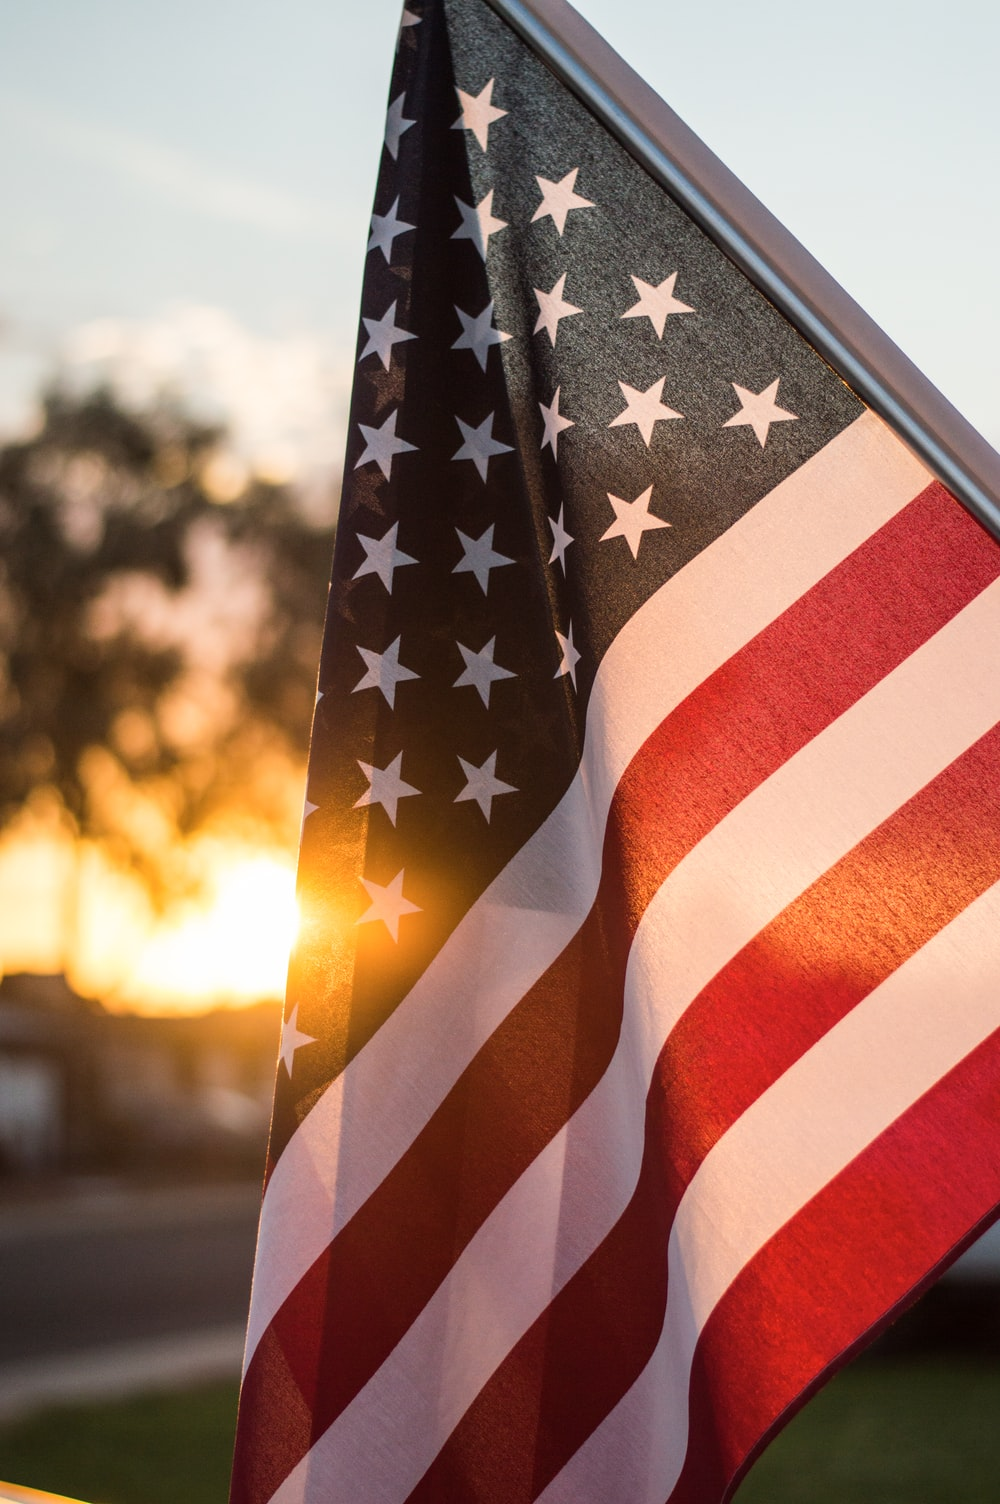 selective focus photo of U.S.A. flag